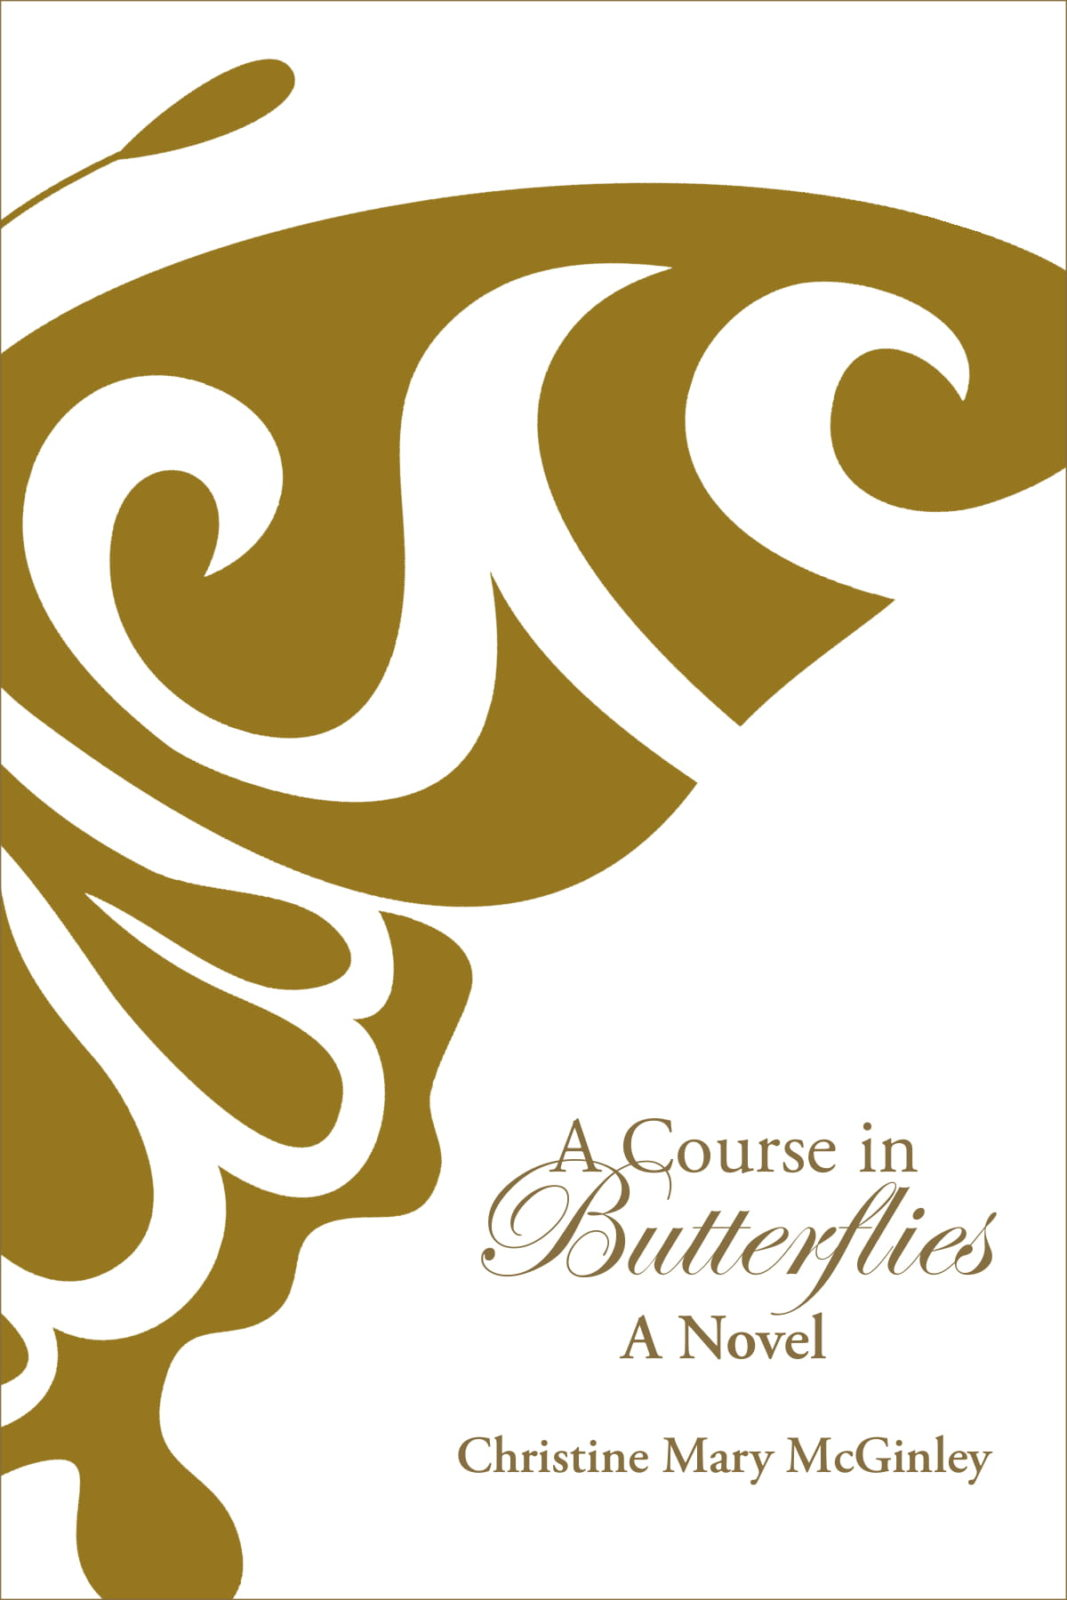 A Course in Butterflies by Christine Mary McGinley